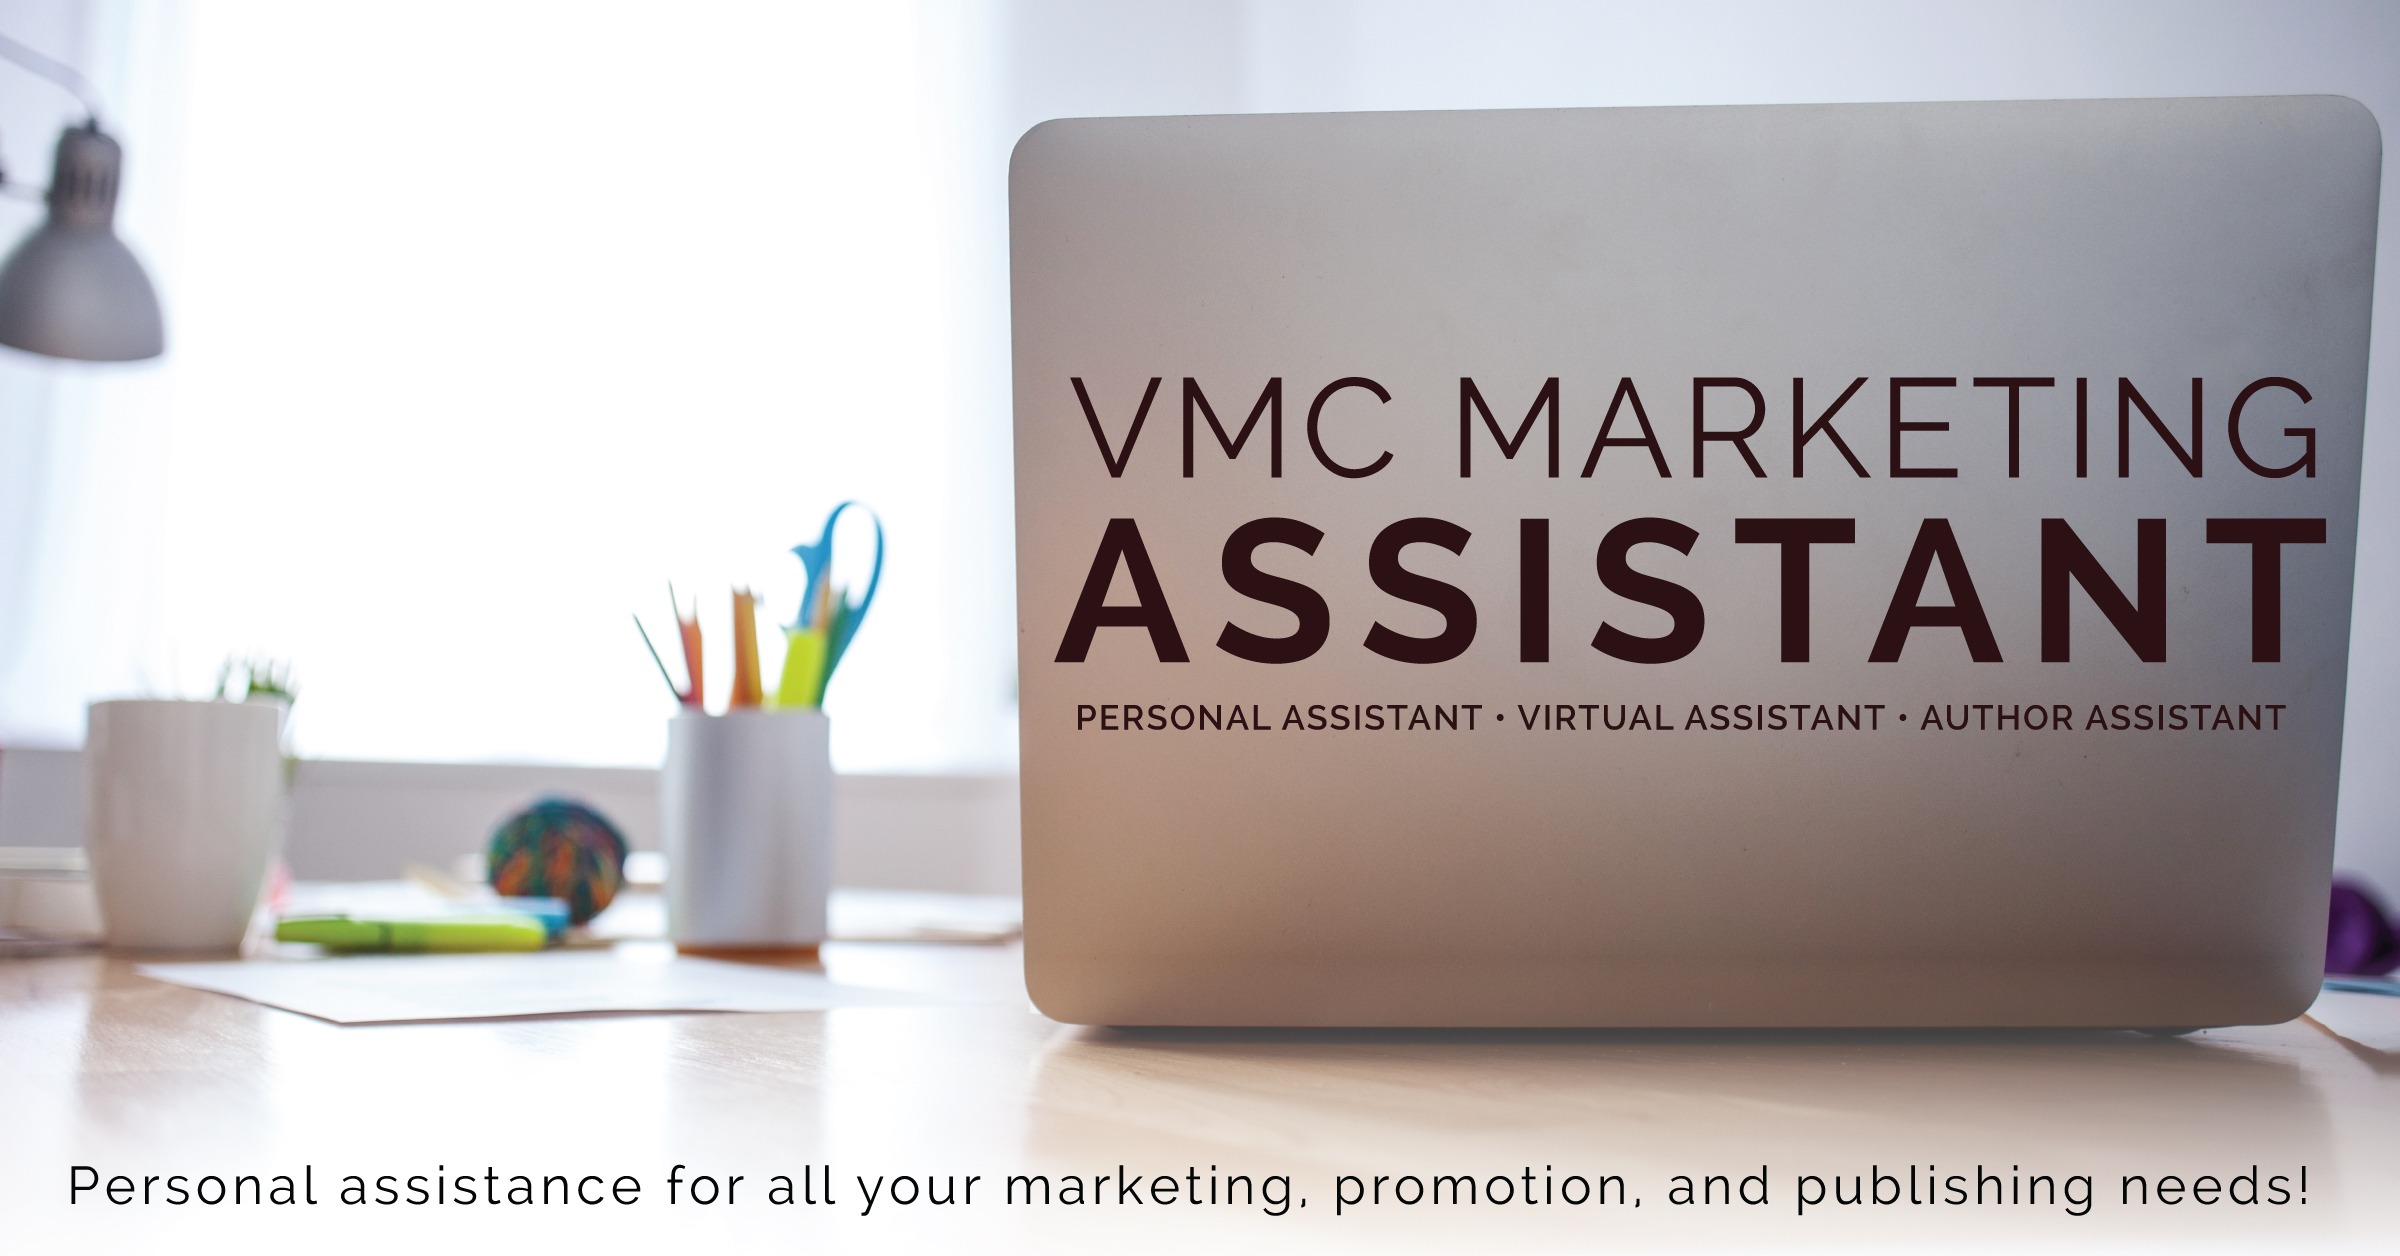 Find out more about our VMC Marketing Assistant services